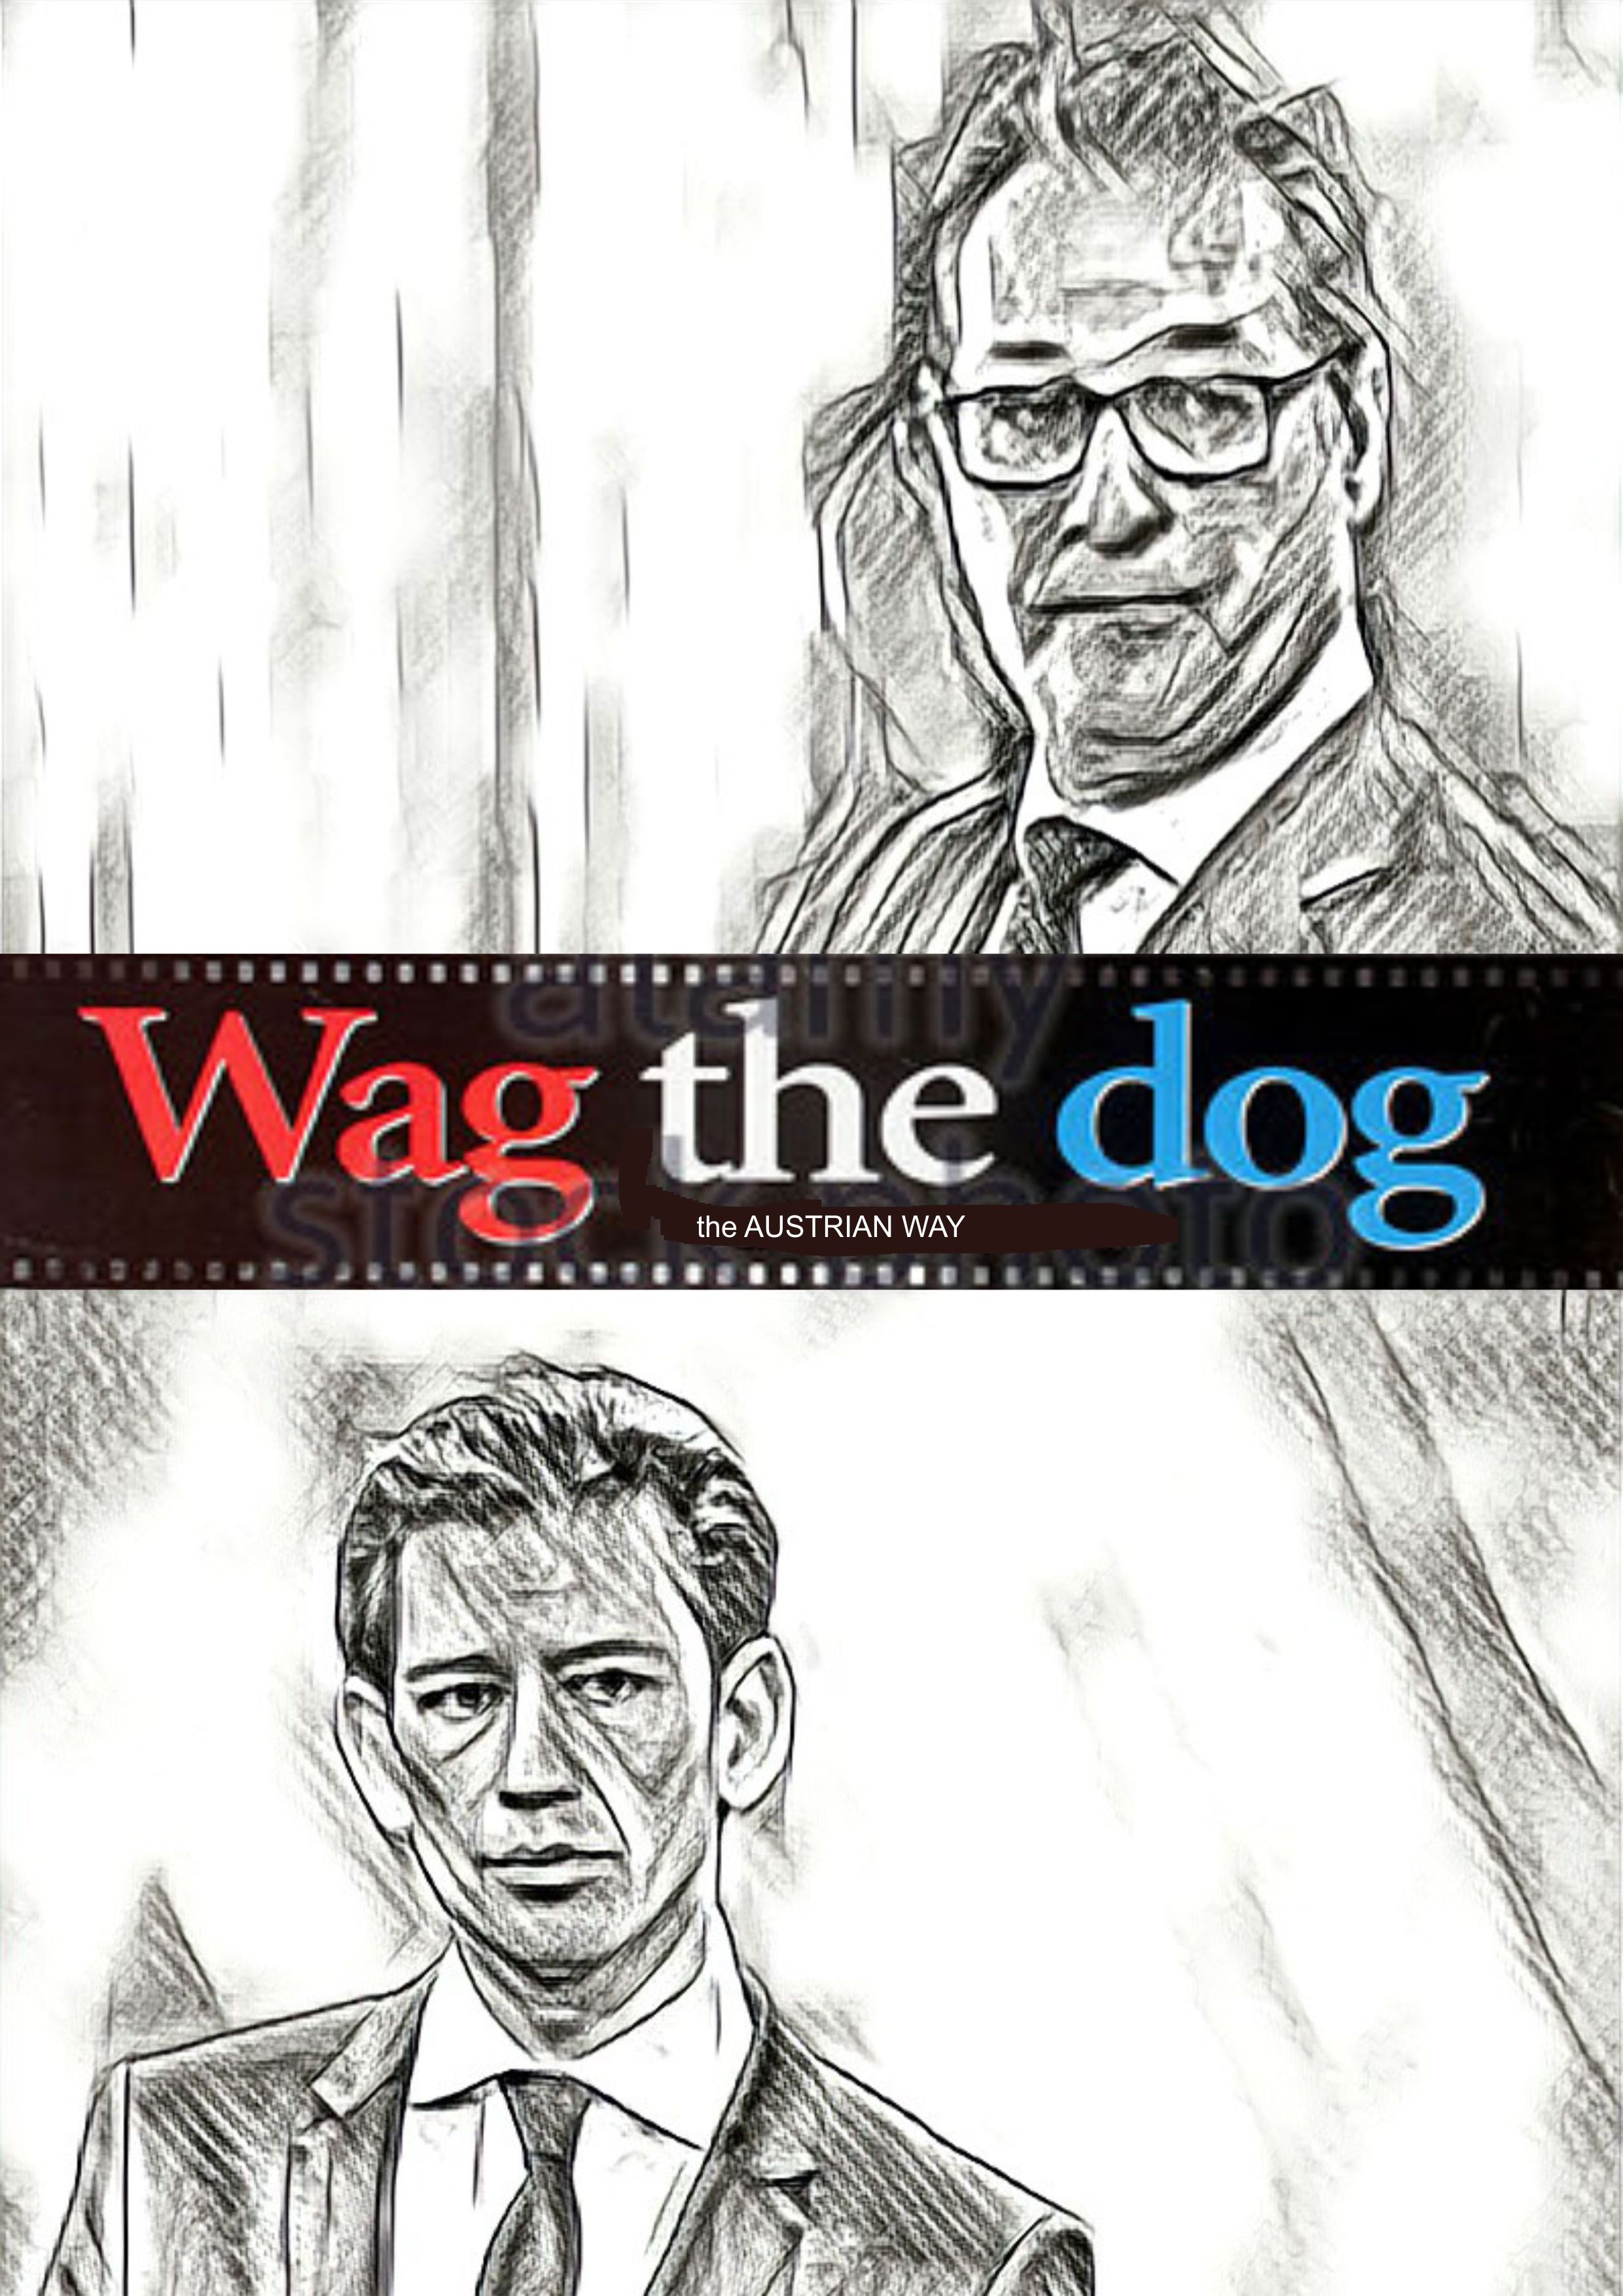 The Austrian Way of Wag The Dog